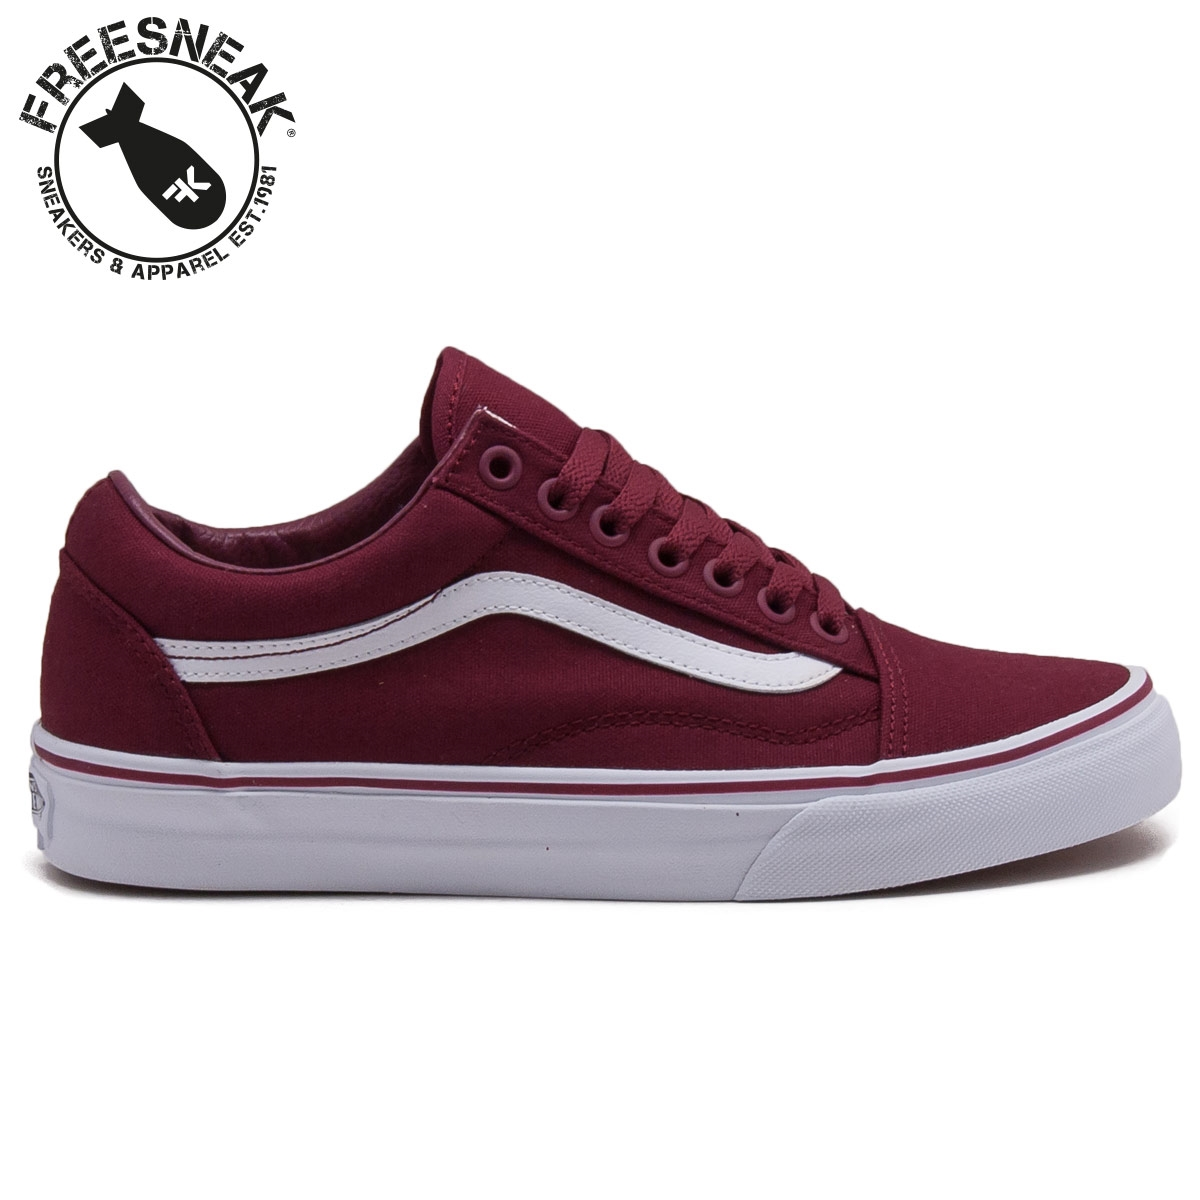 vans old skool bordeaux. Black Bedroom Furniture Sets. Home Design Ideas